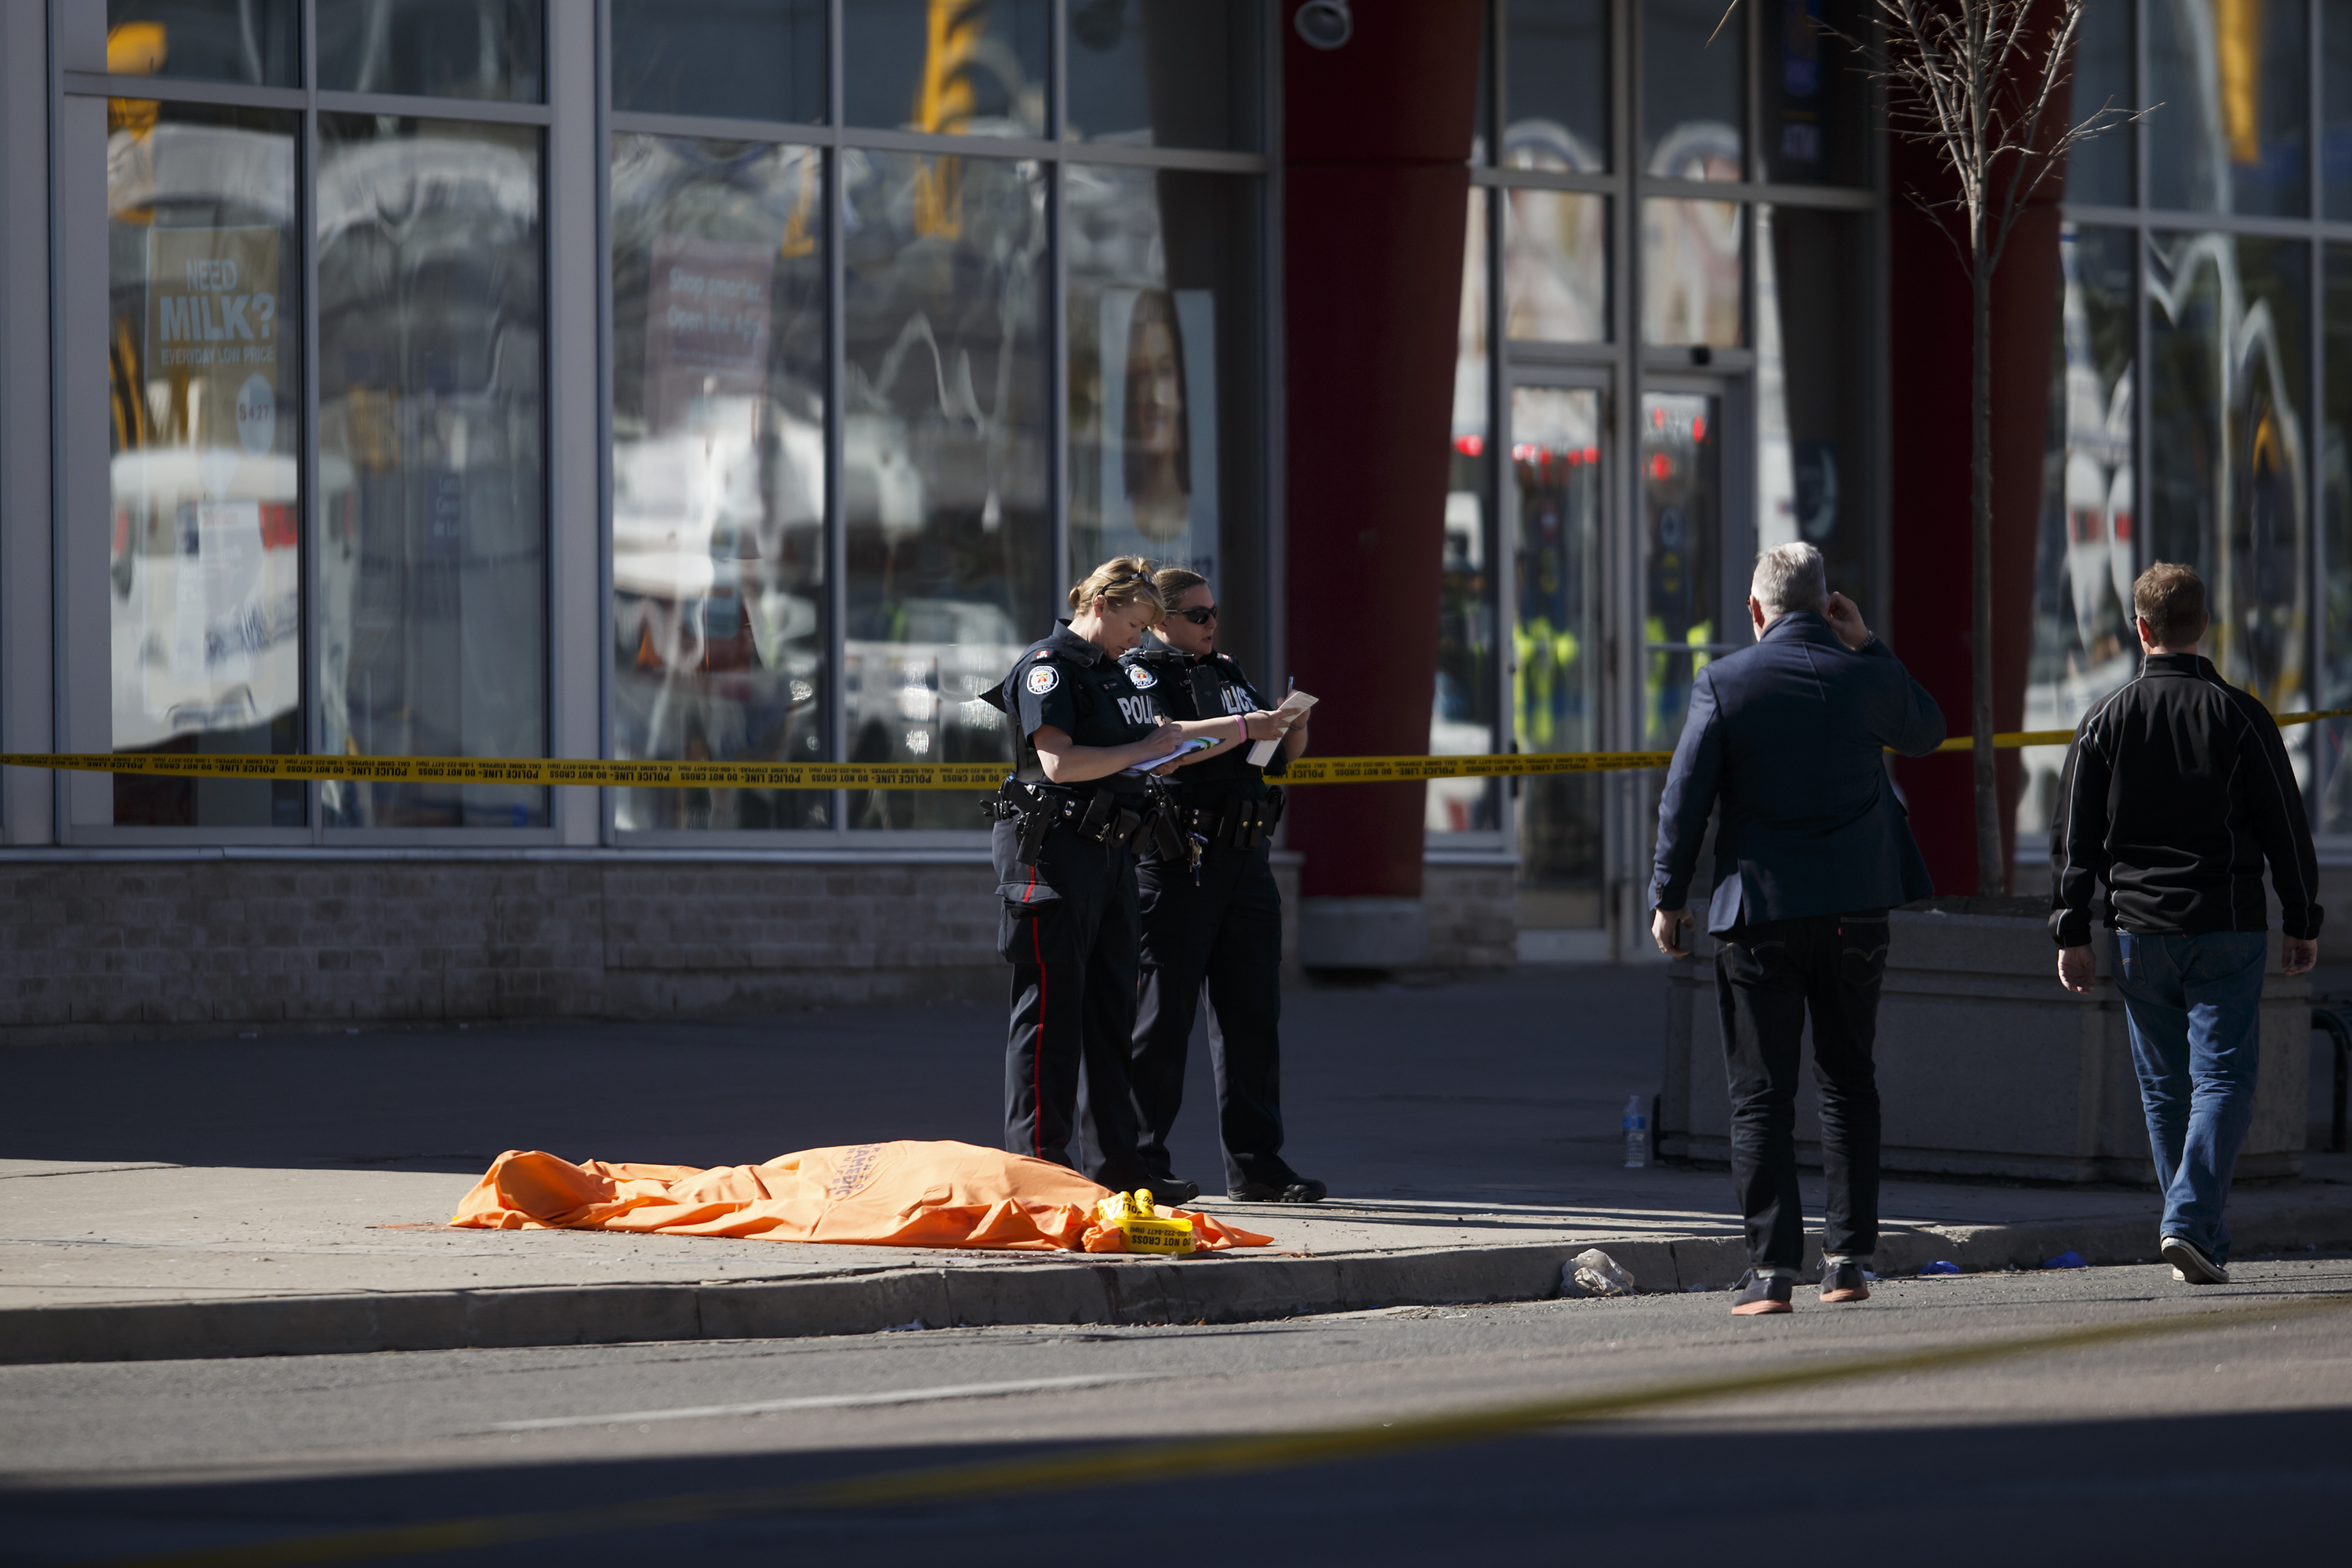 An unidentified body at the scene after a van plowed into pedestrians on April 23, 2018